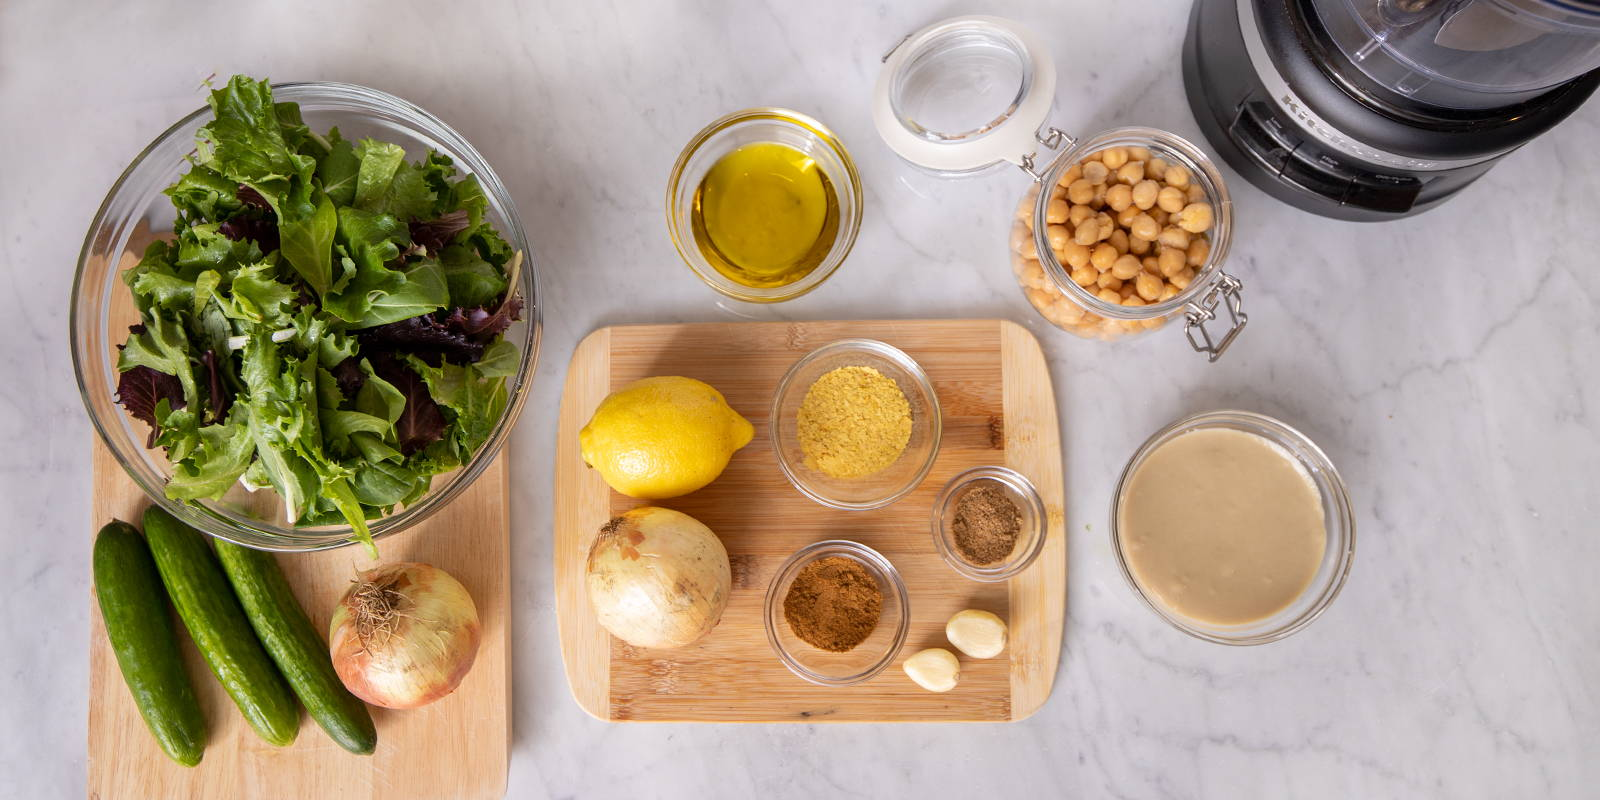 How to make homemade hummus that's full of flavor and spices for serving vegan meals.